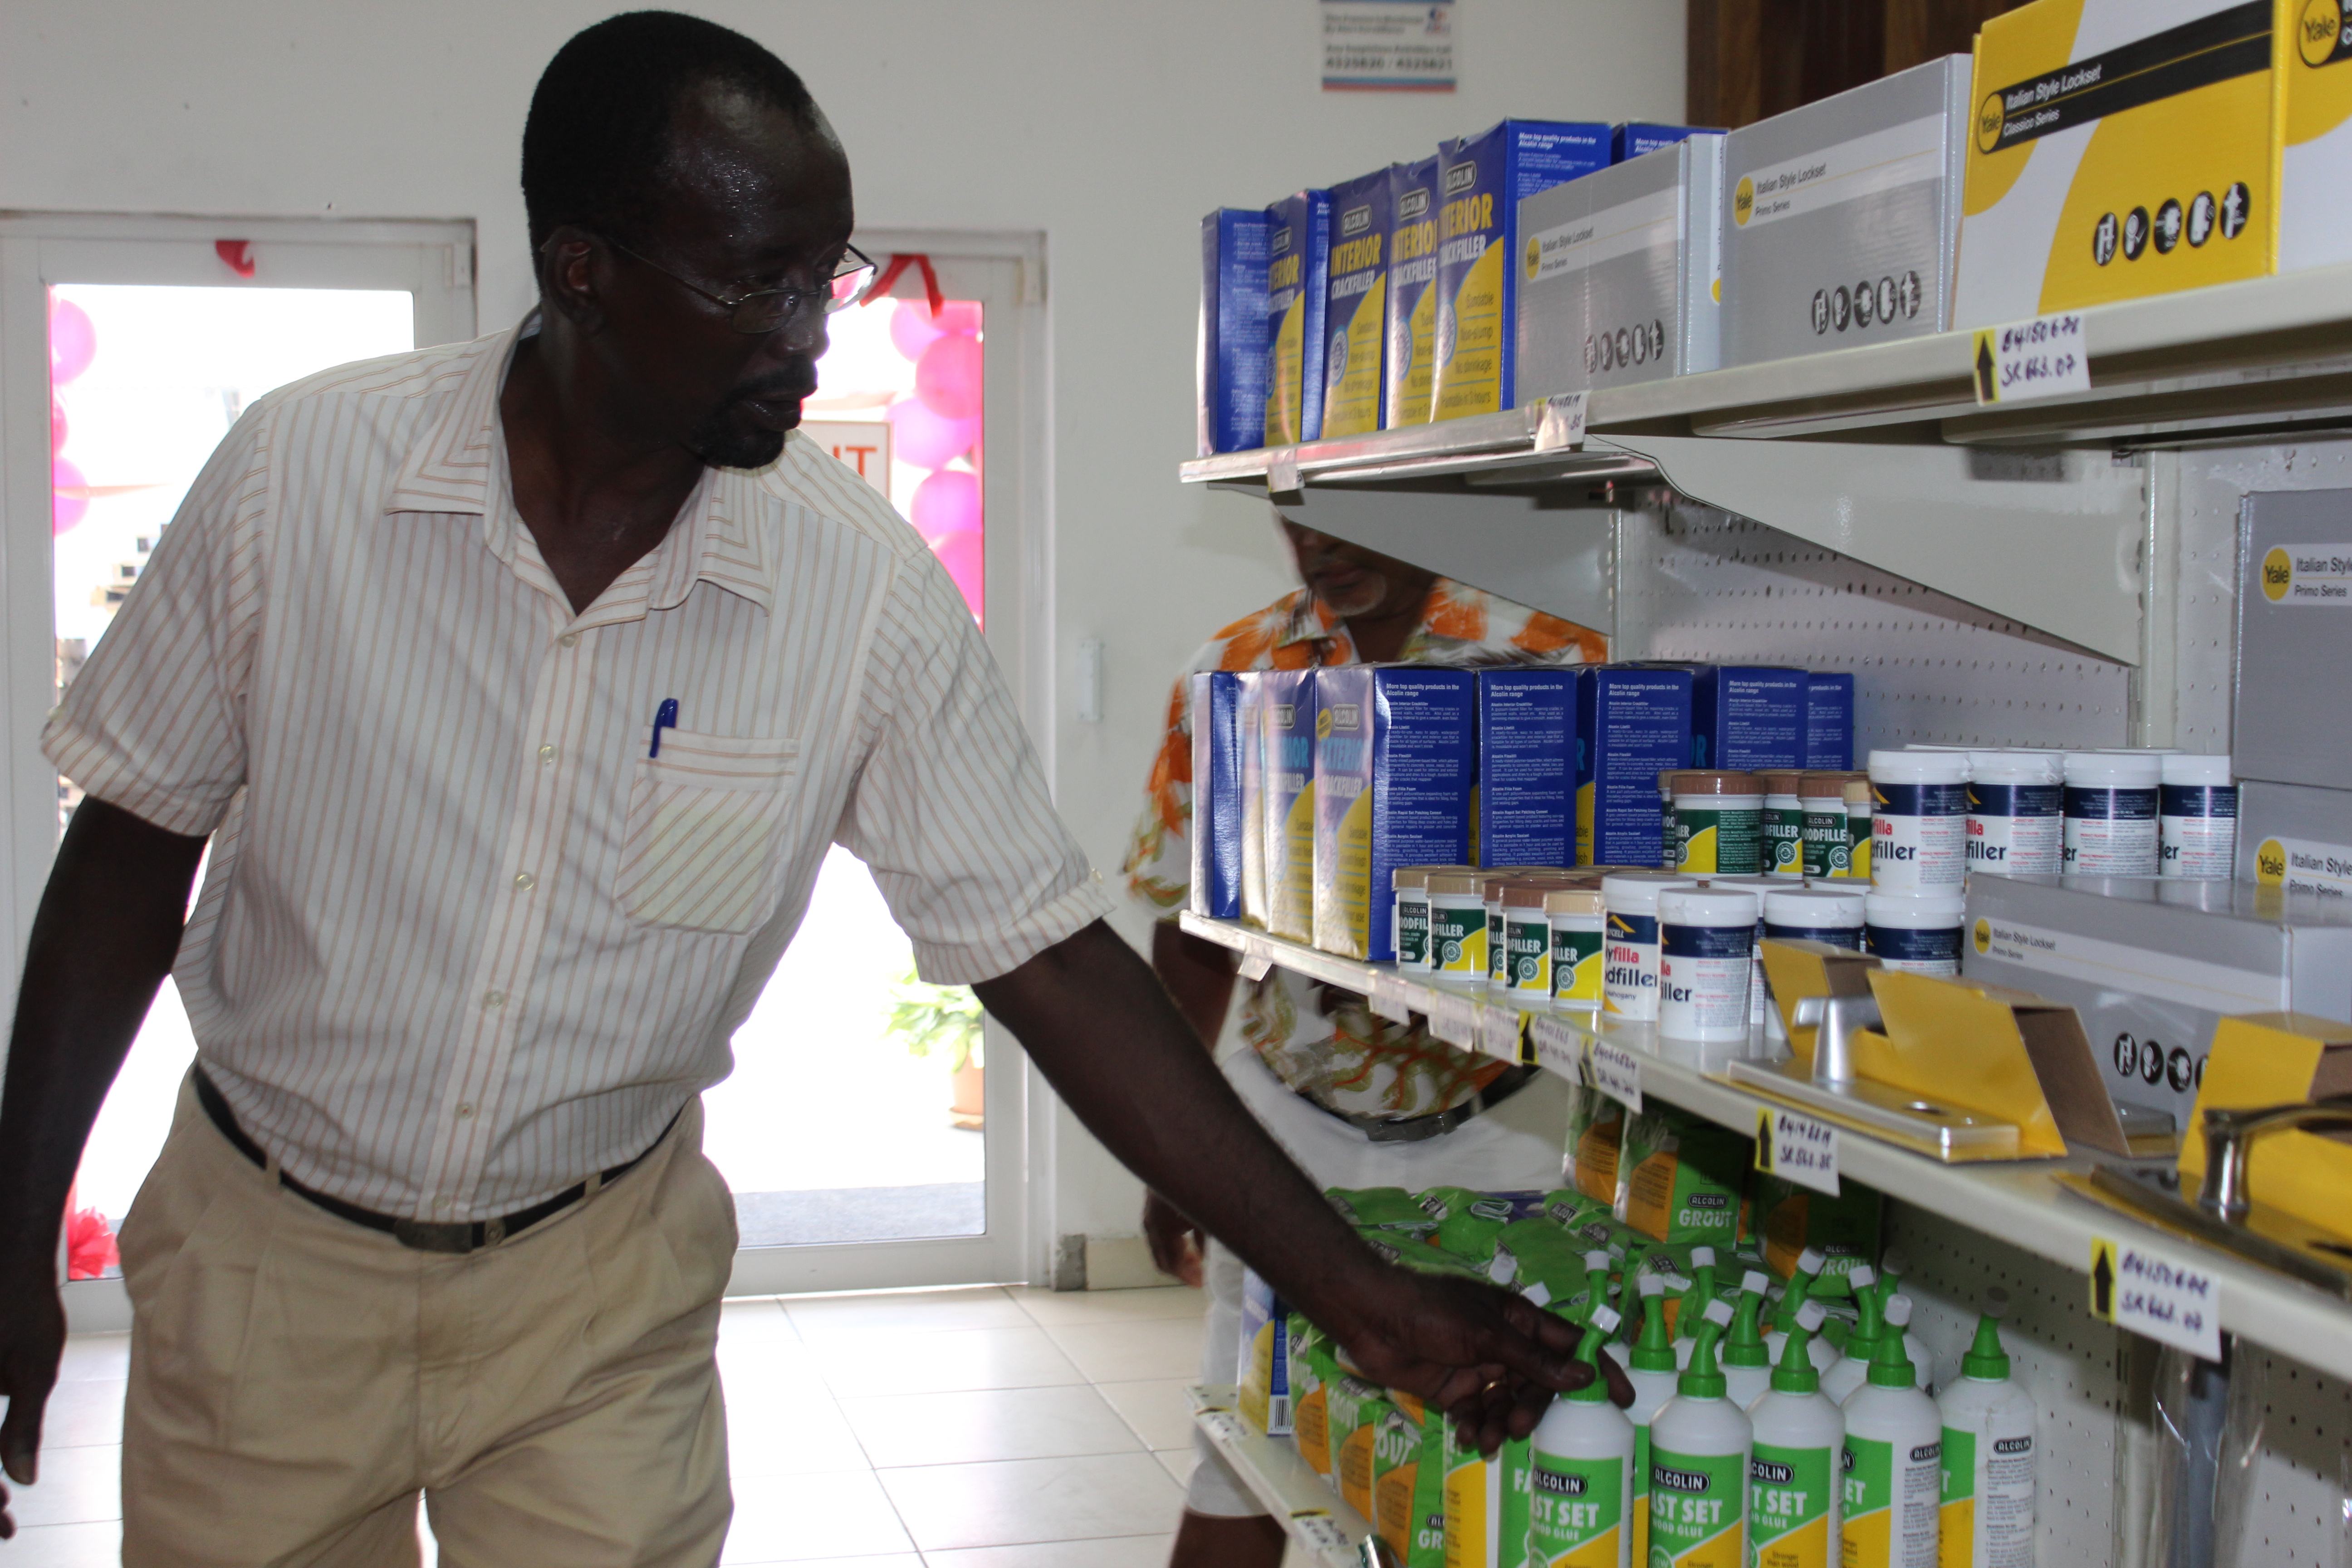 One of the Contractors viewing the items at teh retail store